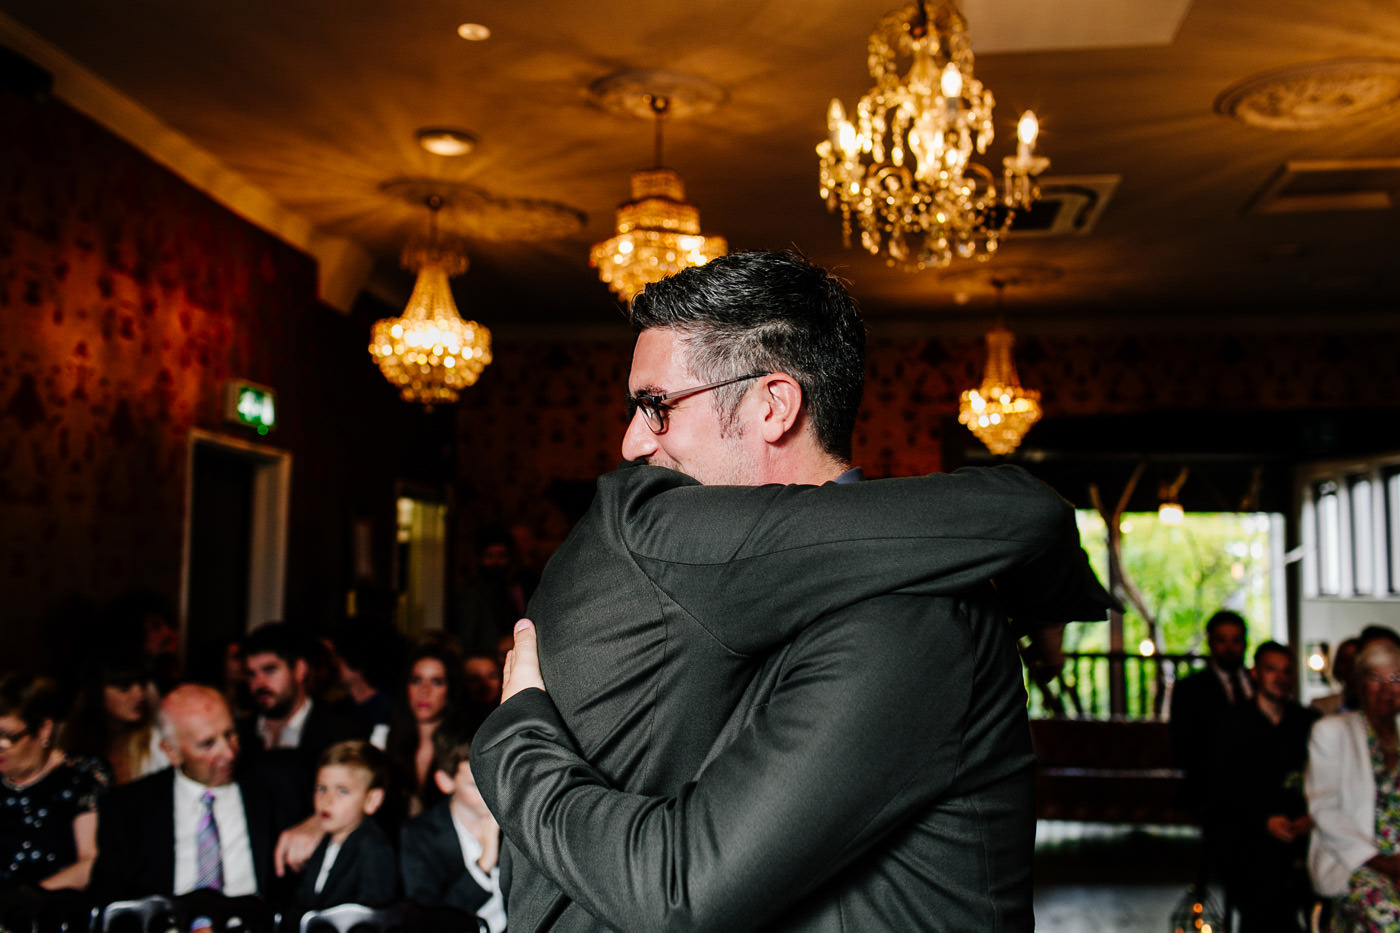 The-bell-in-Ticehurst-pub-kent-wedding-photographer-London-Epic-Love-Story-045